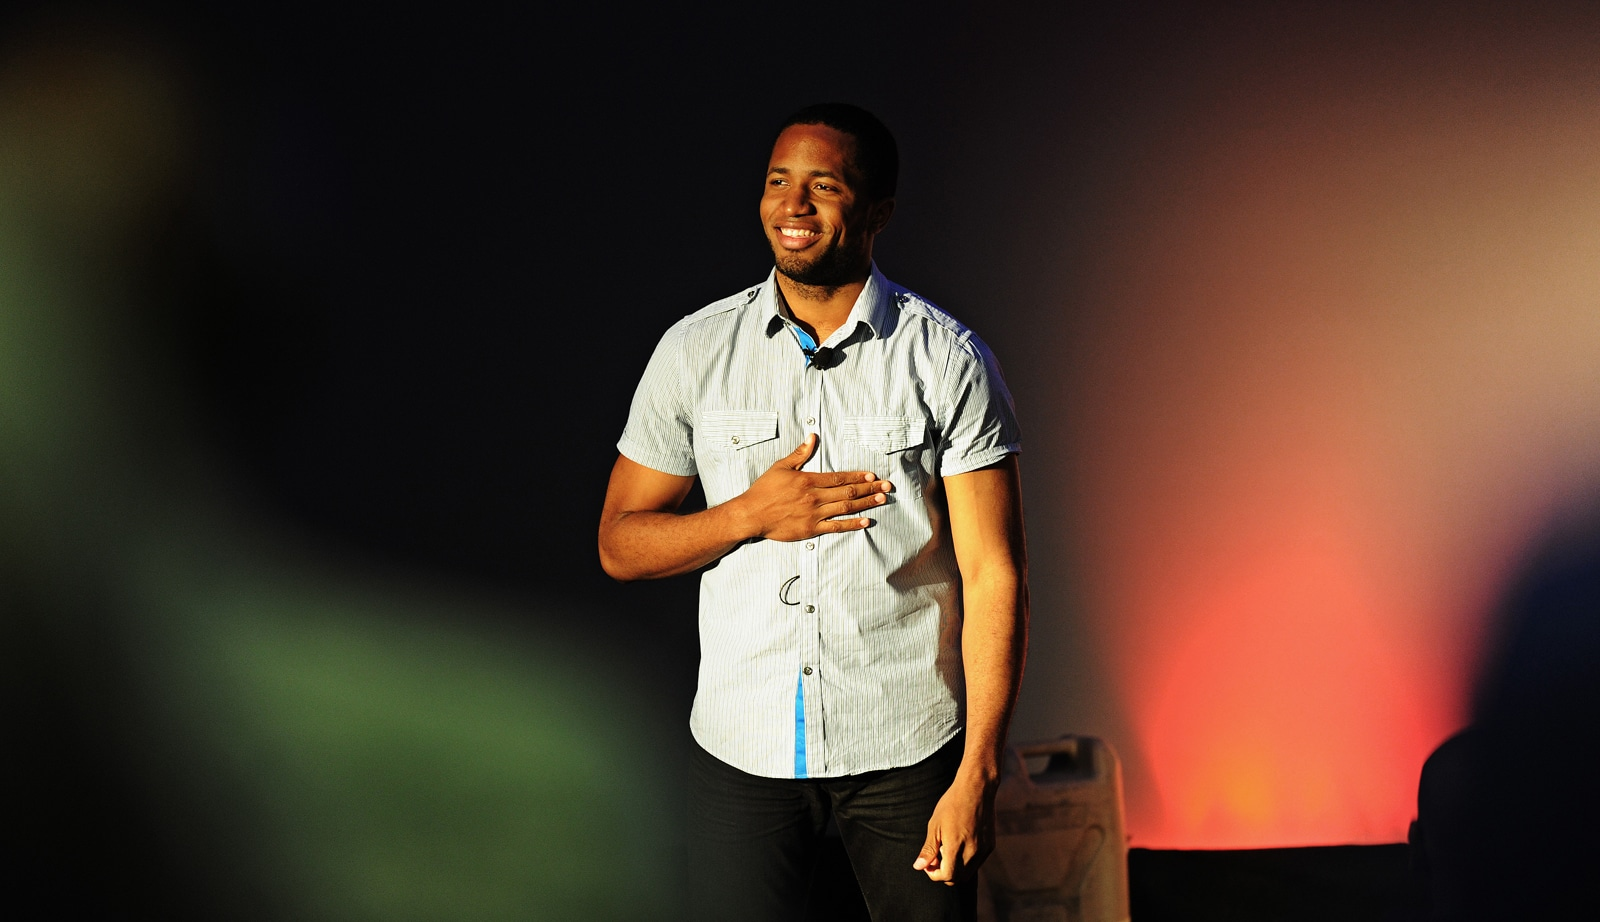 Spoken word poet to perform for Mallory Lecture